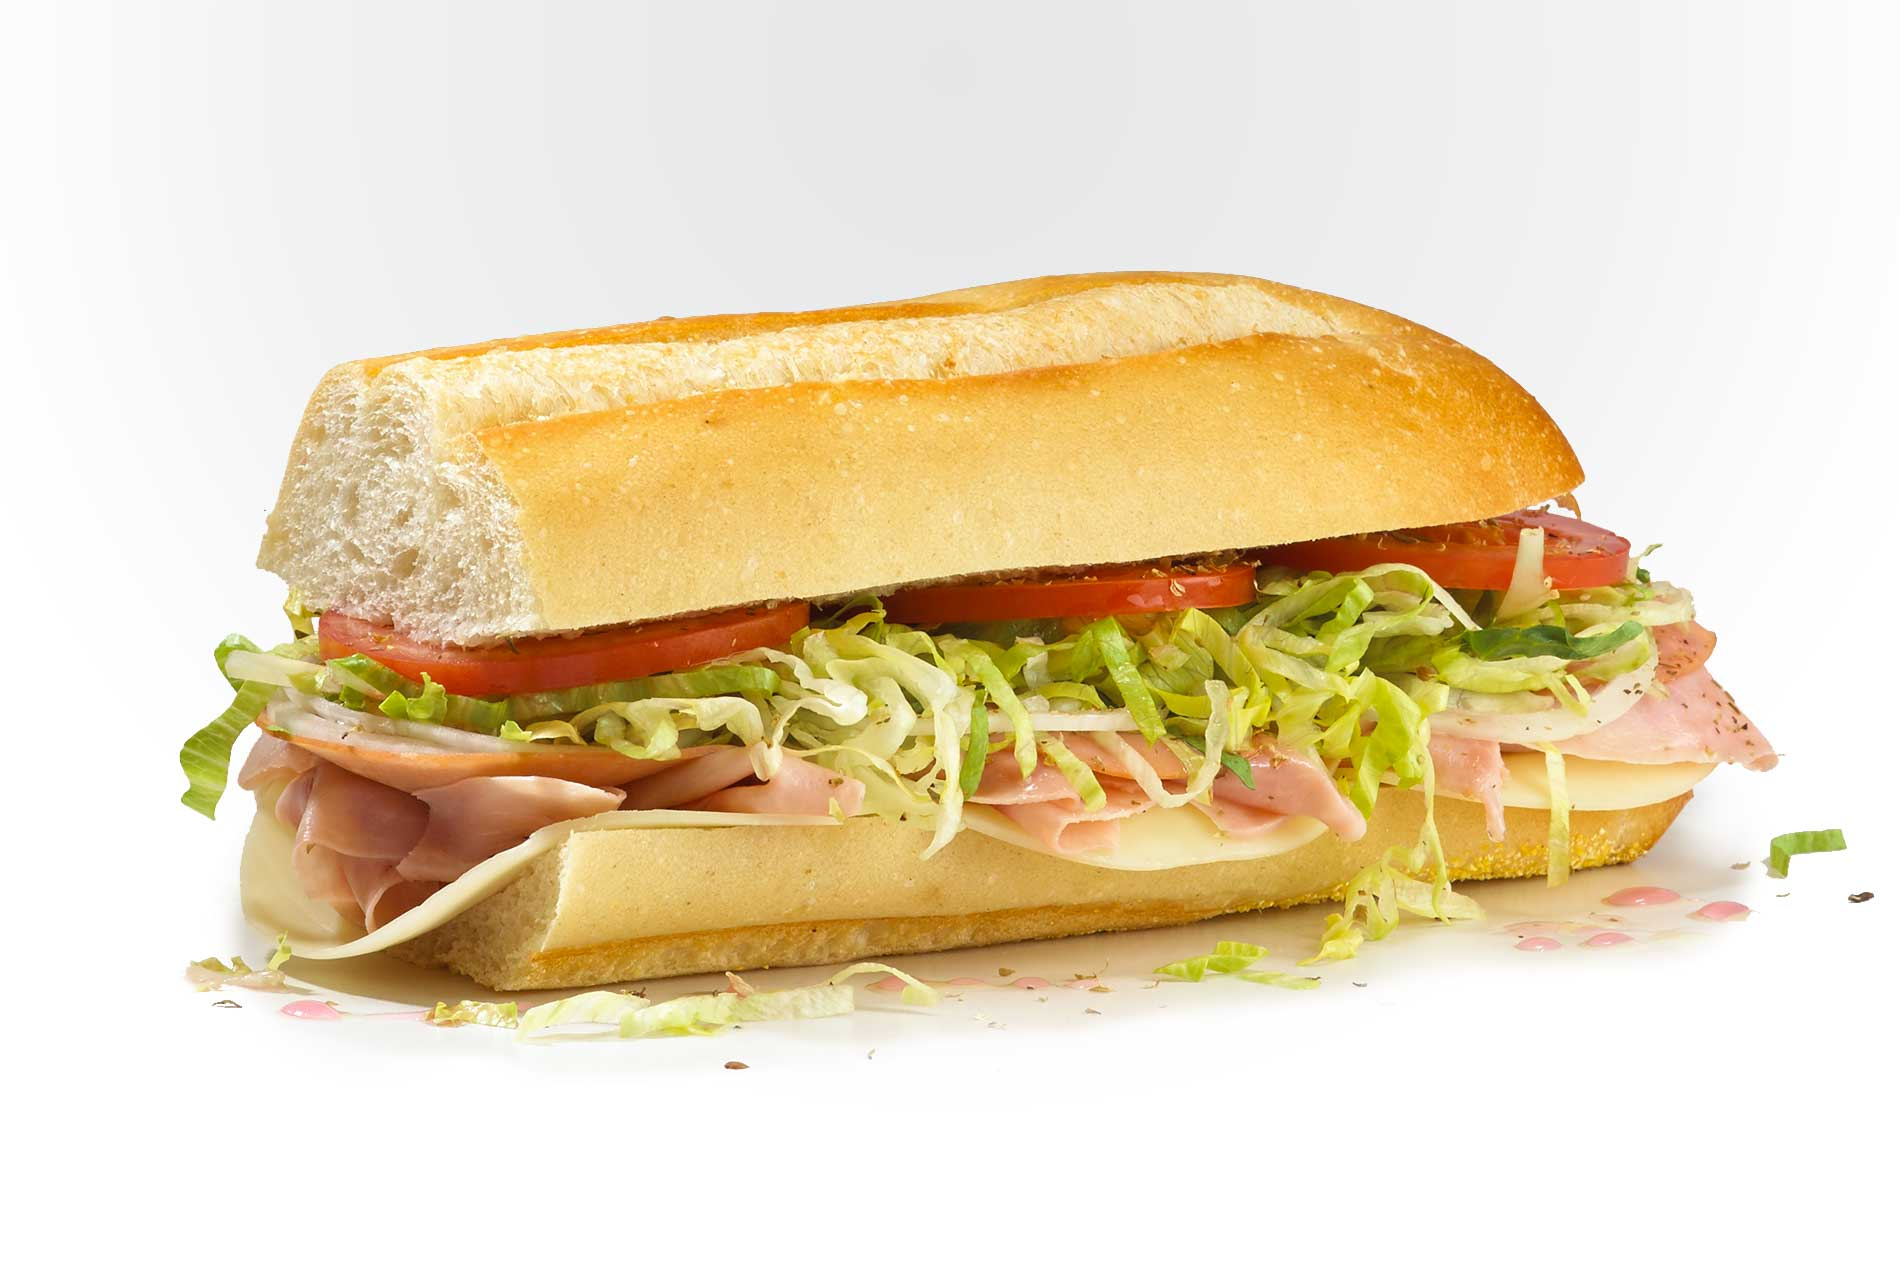 #2 Jersey Shore's Favorite - Fresh Sliced Cold Subs